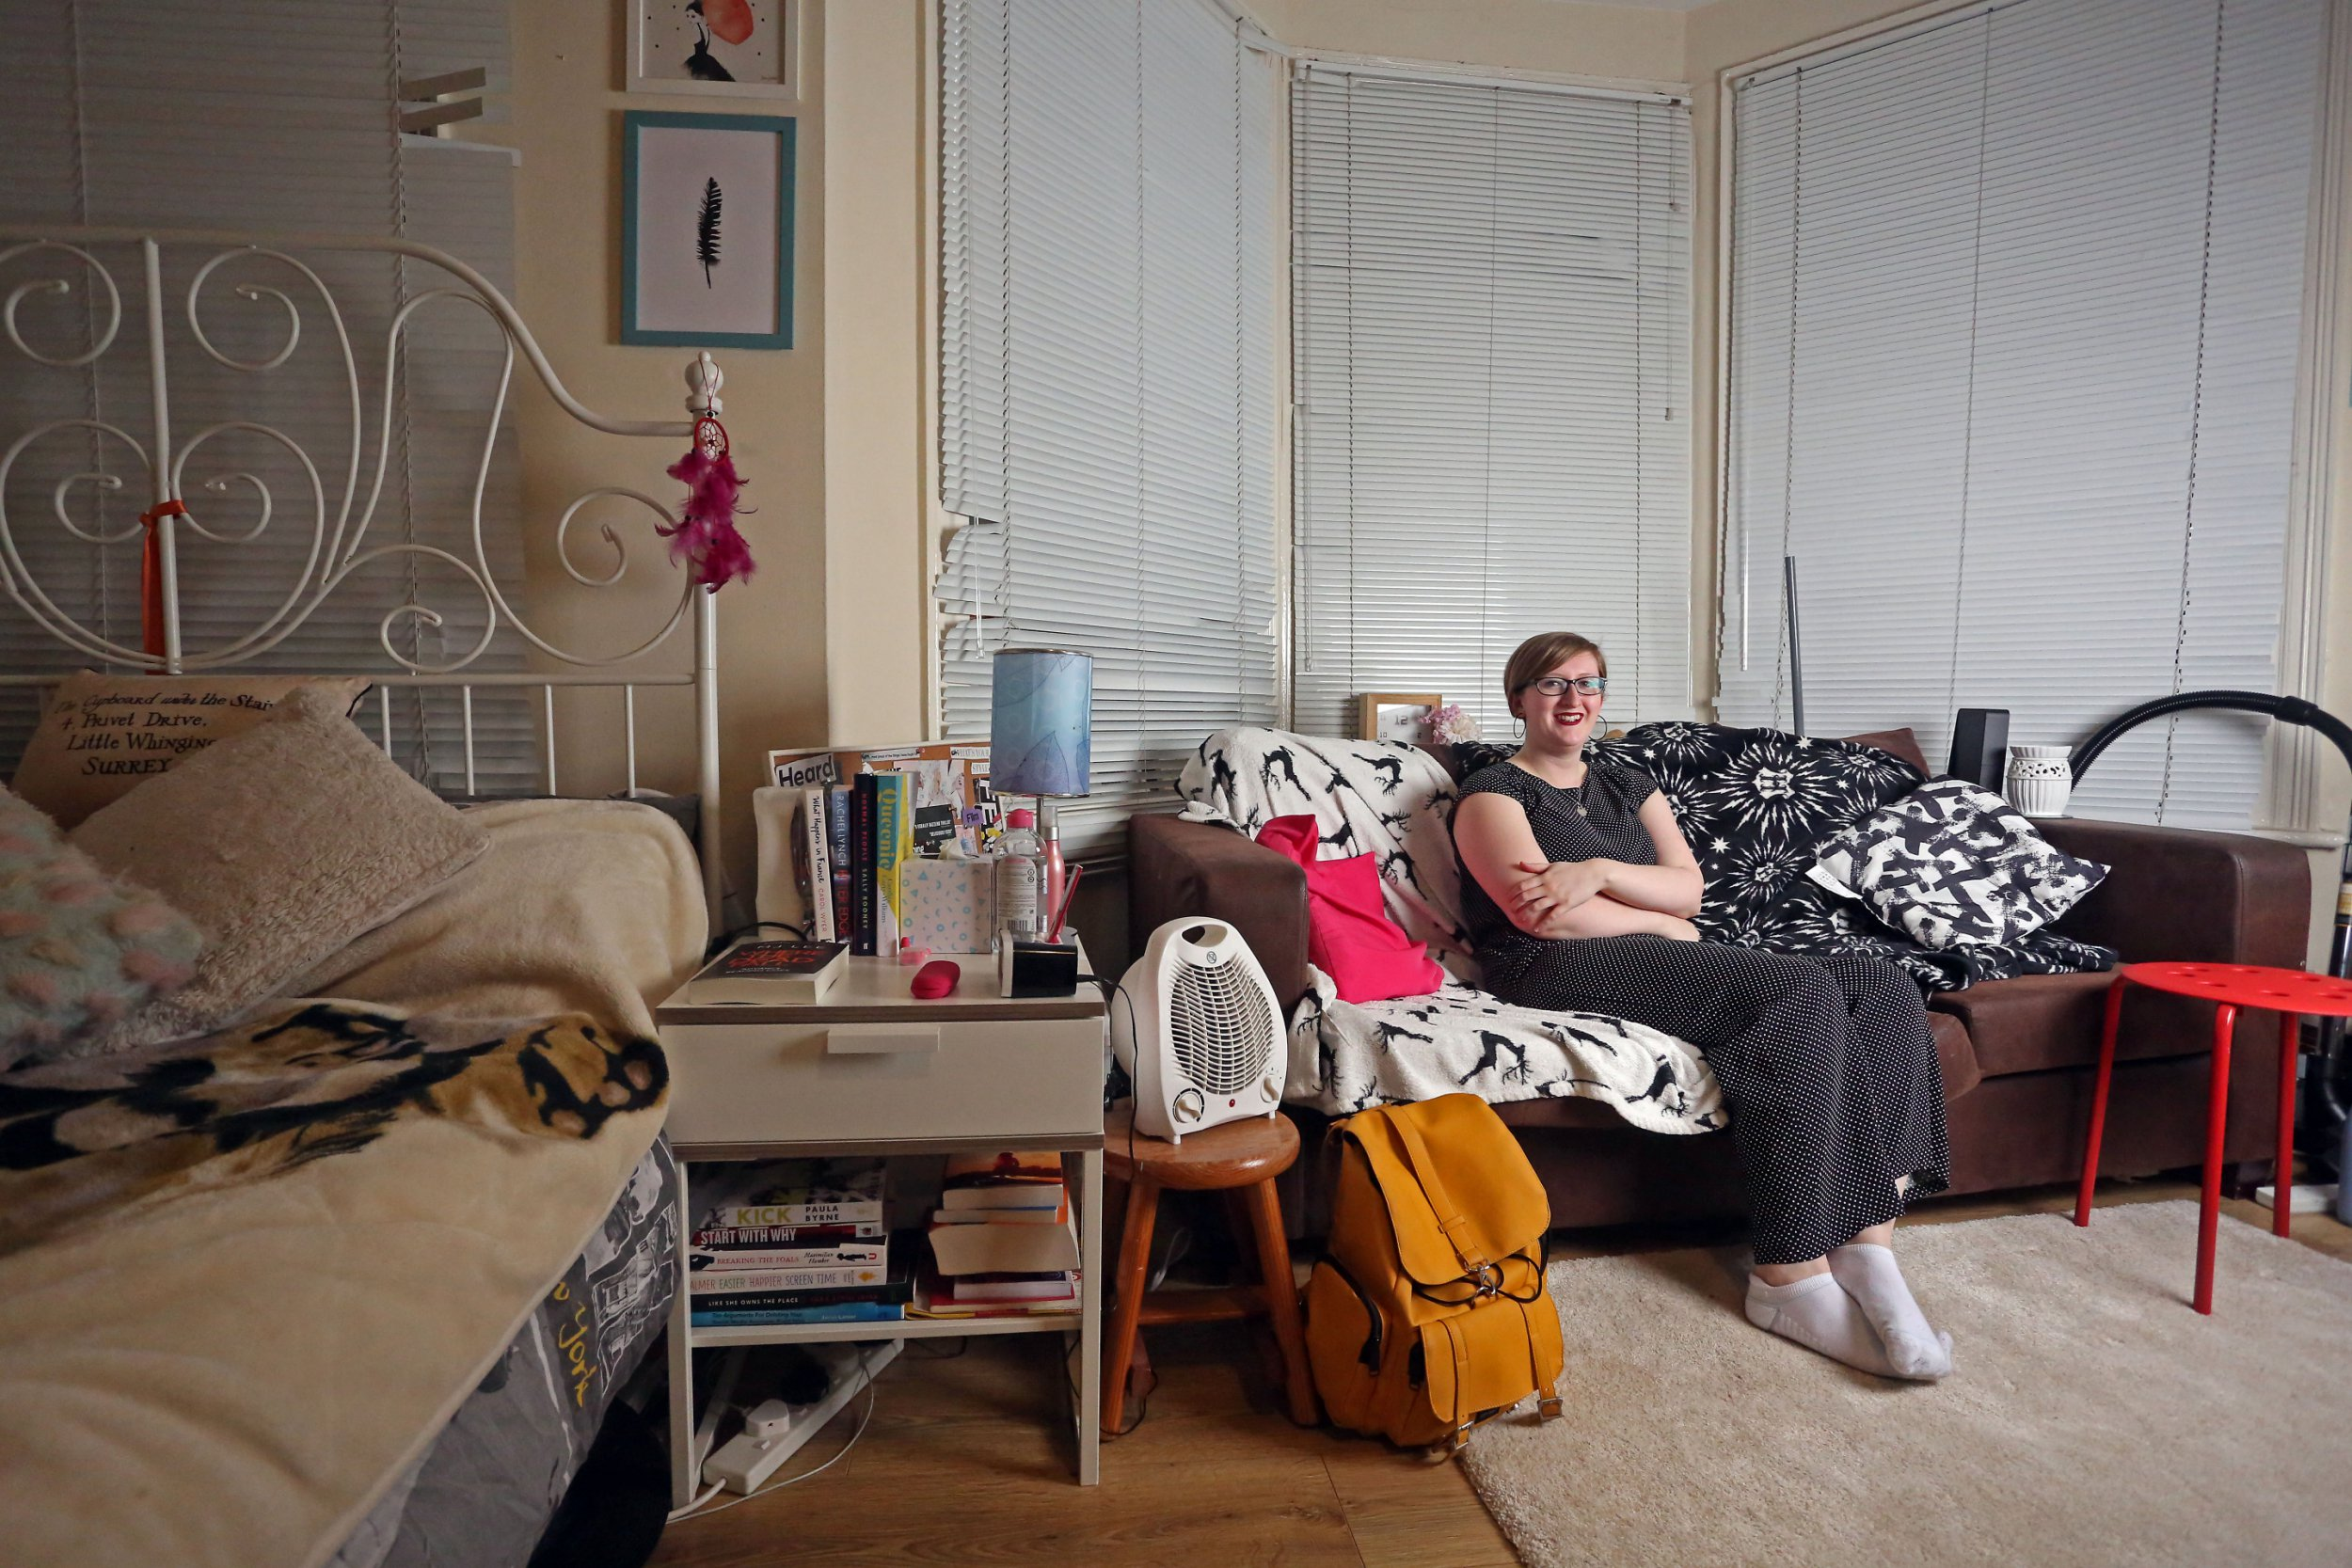 LONDON, UNITED KINGDOM, FEBRUARY 12TH 2019. WHAT I RENT: WEST GREEN Tenant Ellie Pilcher is pictured in her combined living room, bedroom and kitchen in her bedsit flat in West Green in Haringey, London, 12th February 2019. Ellie pays ?800 a month, which also includes water, gas and council tax. Photo credit: Susannah Ireland